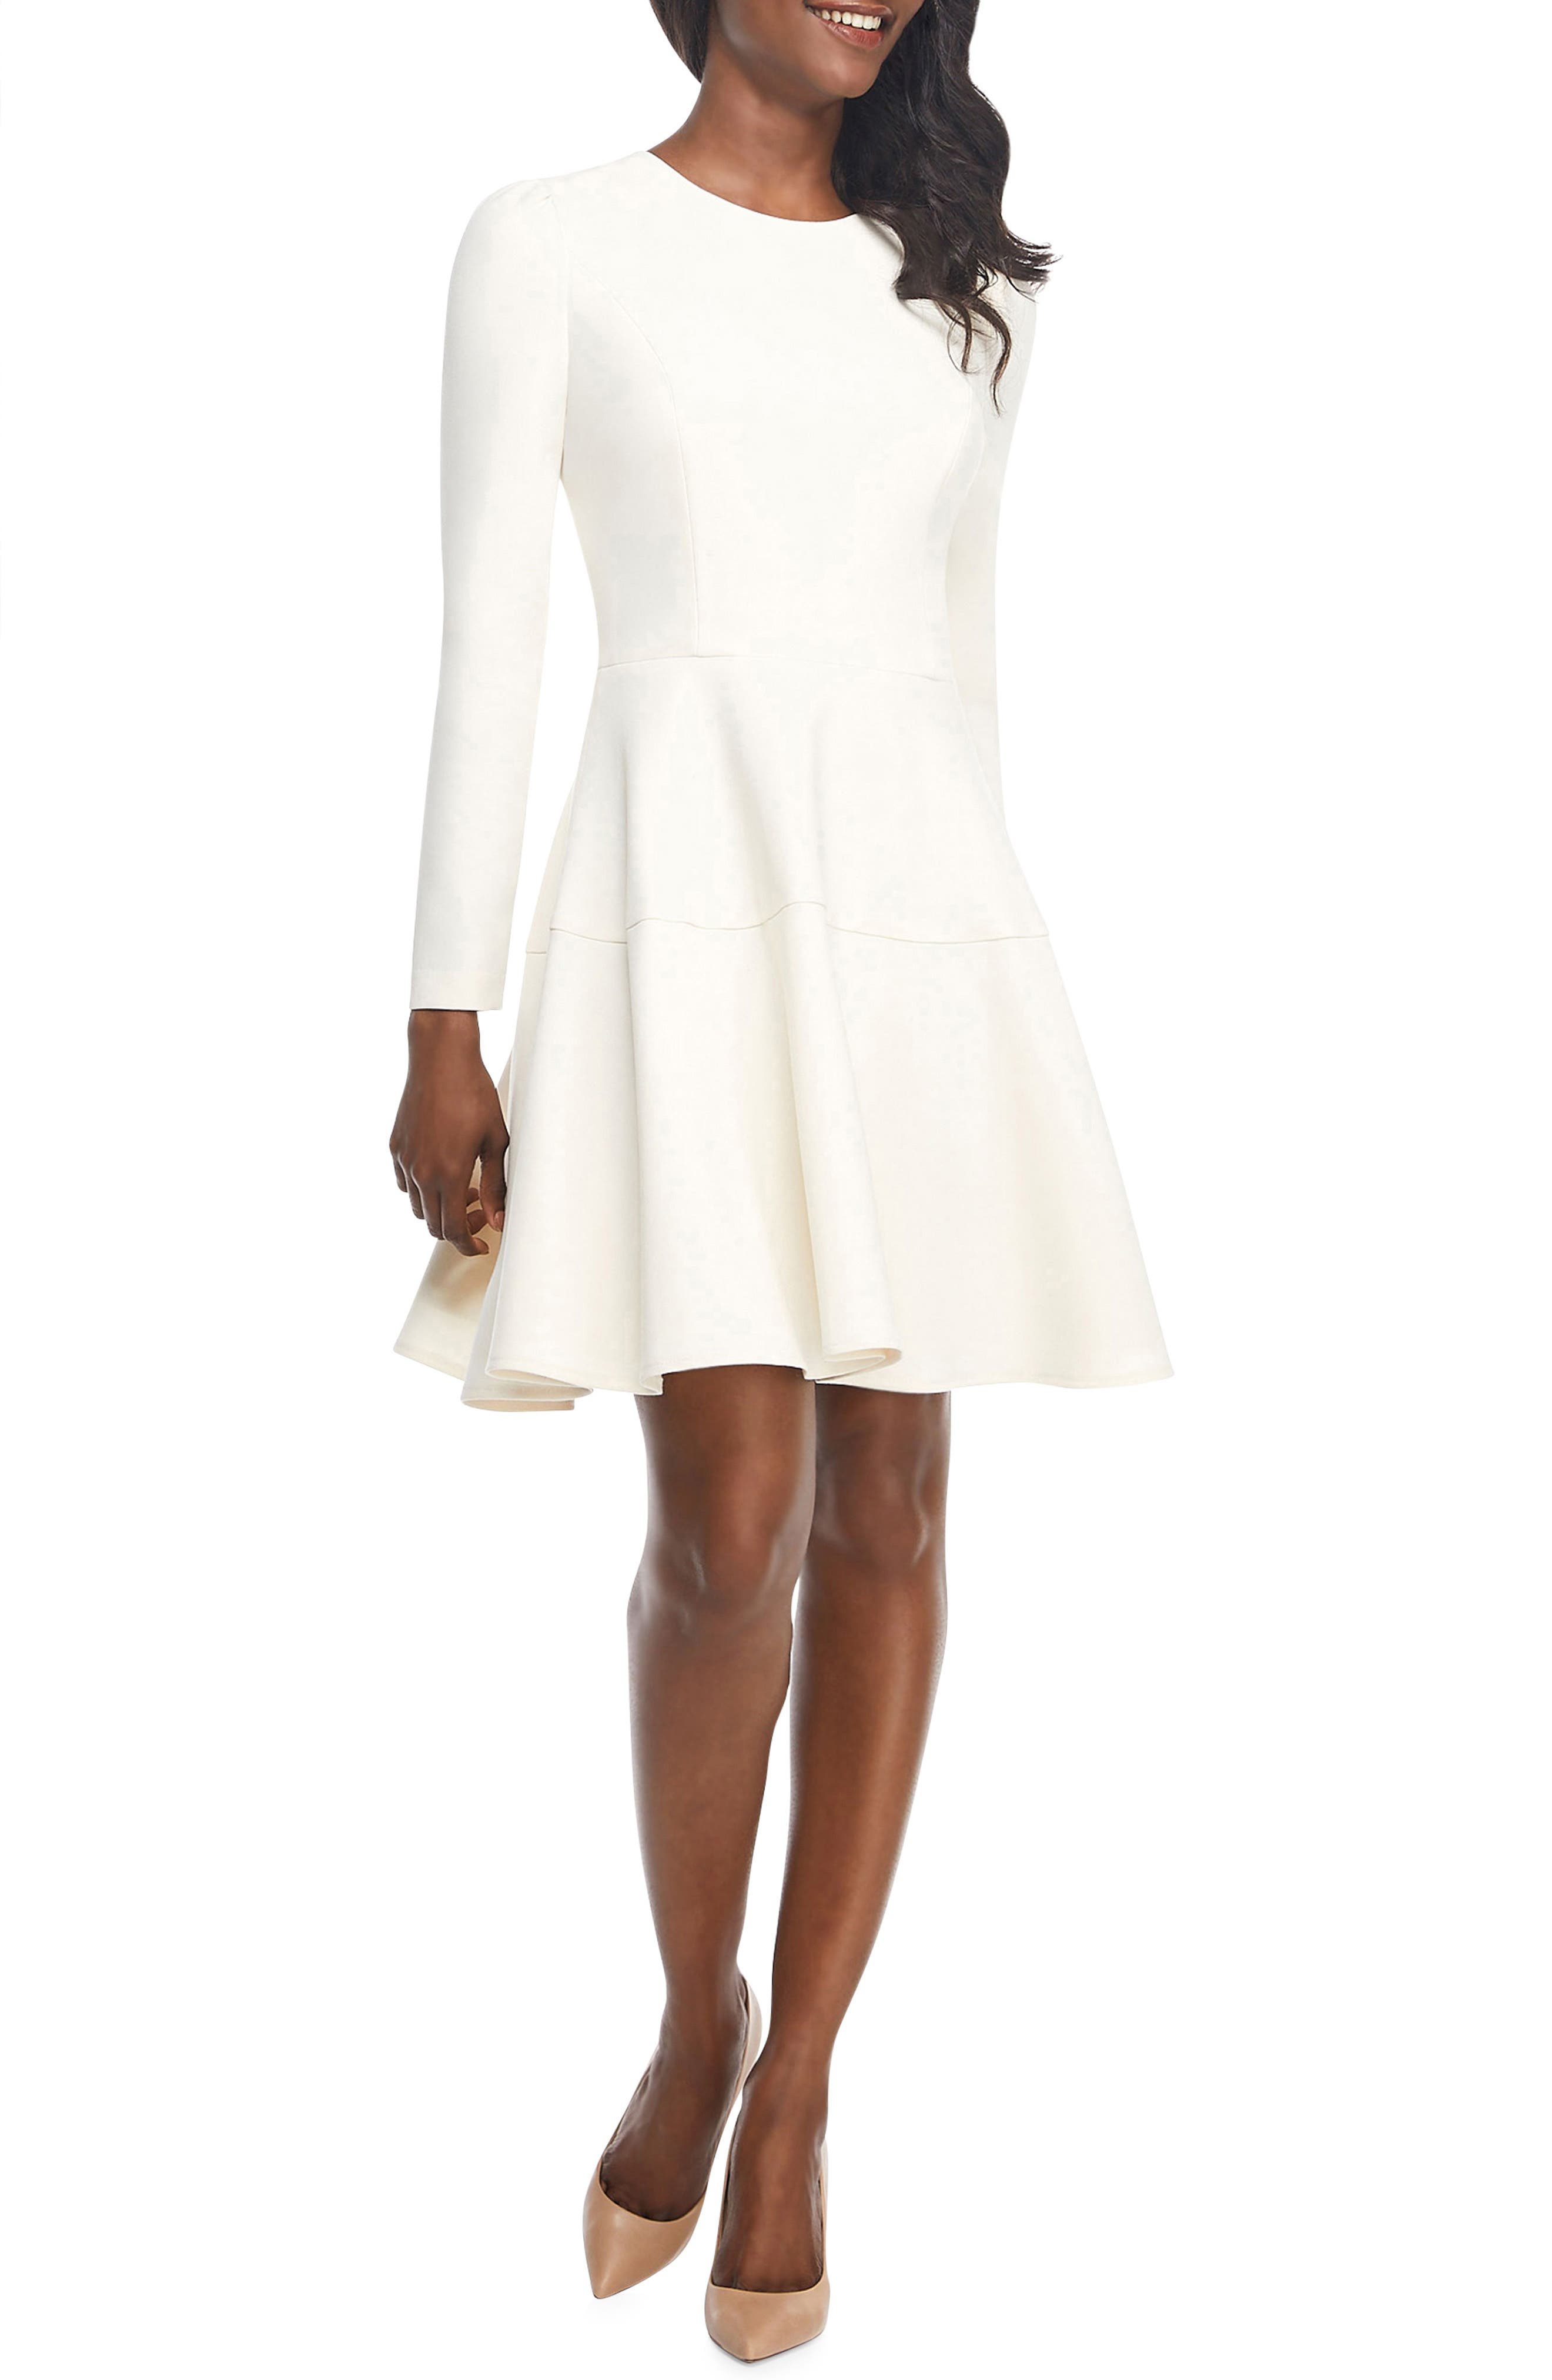 Gal Meets Glam Collection Celeste Fit & Flare Dress, 0 (similar to 16W-18W) - Ivory